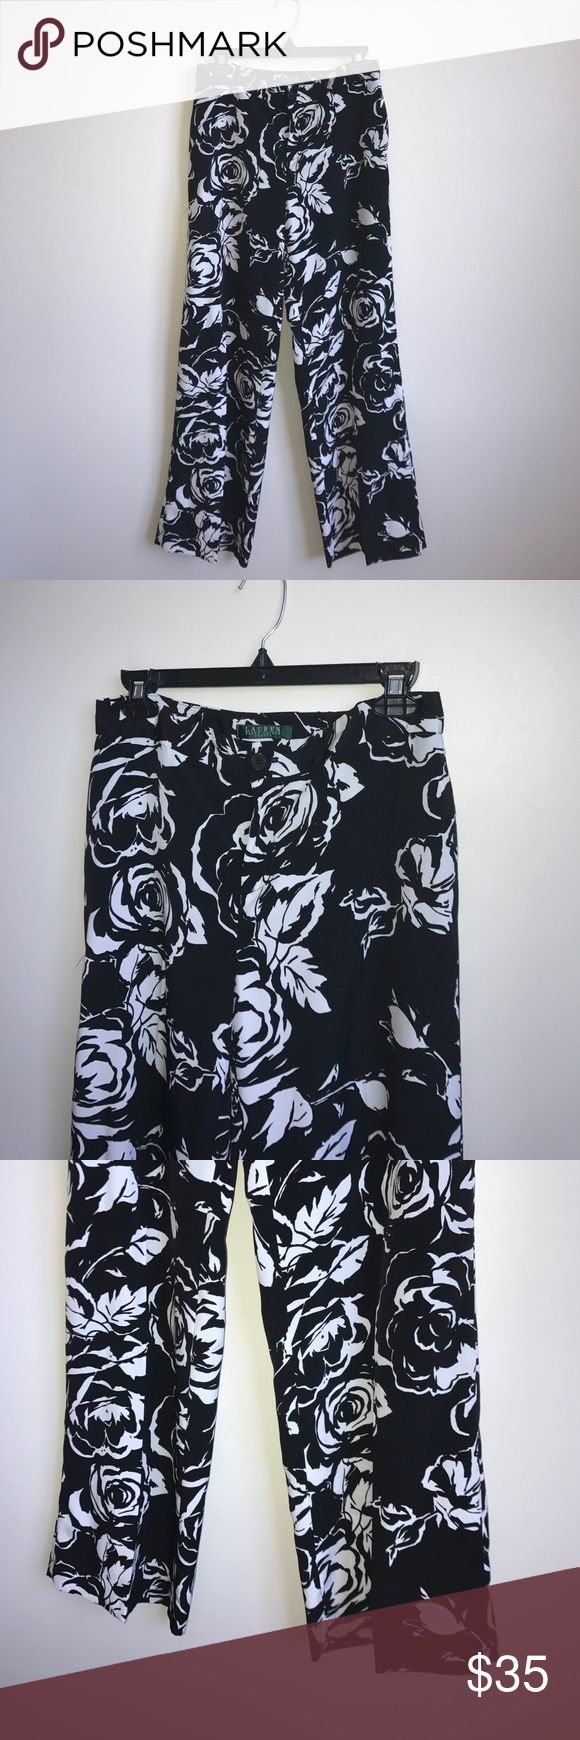 Ralph Lauren dress floral pants Petite 4 black Black and white floral printed dress pants from Lauren Ralph Lauren size 4P. Side pockets, one back pocket. 29'' inseam. Lauren Ralph Lauren Pants Trousers